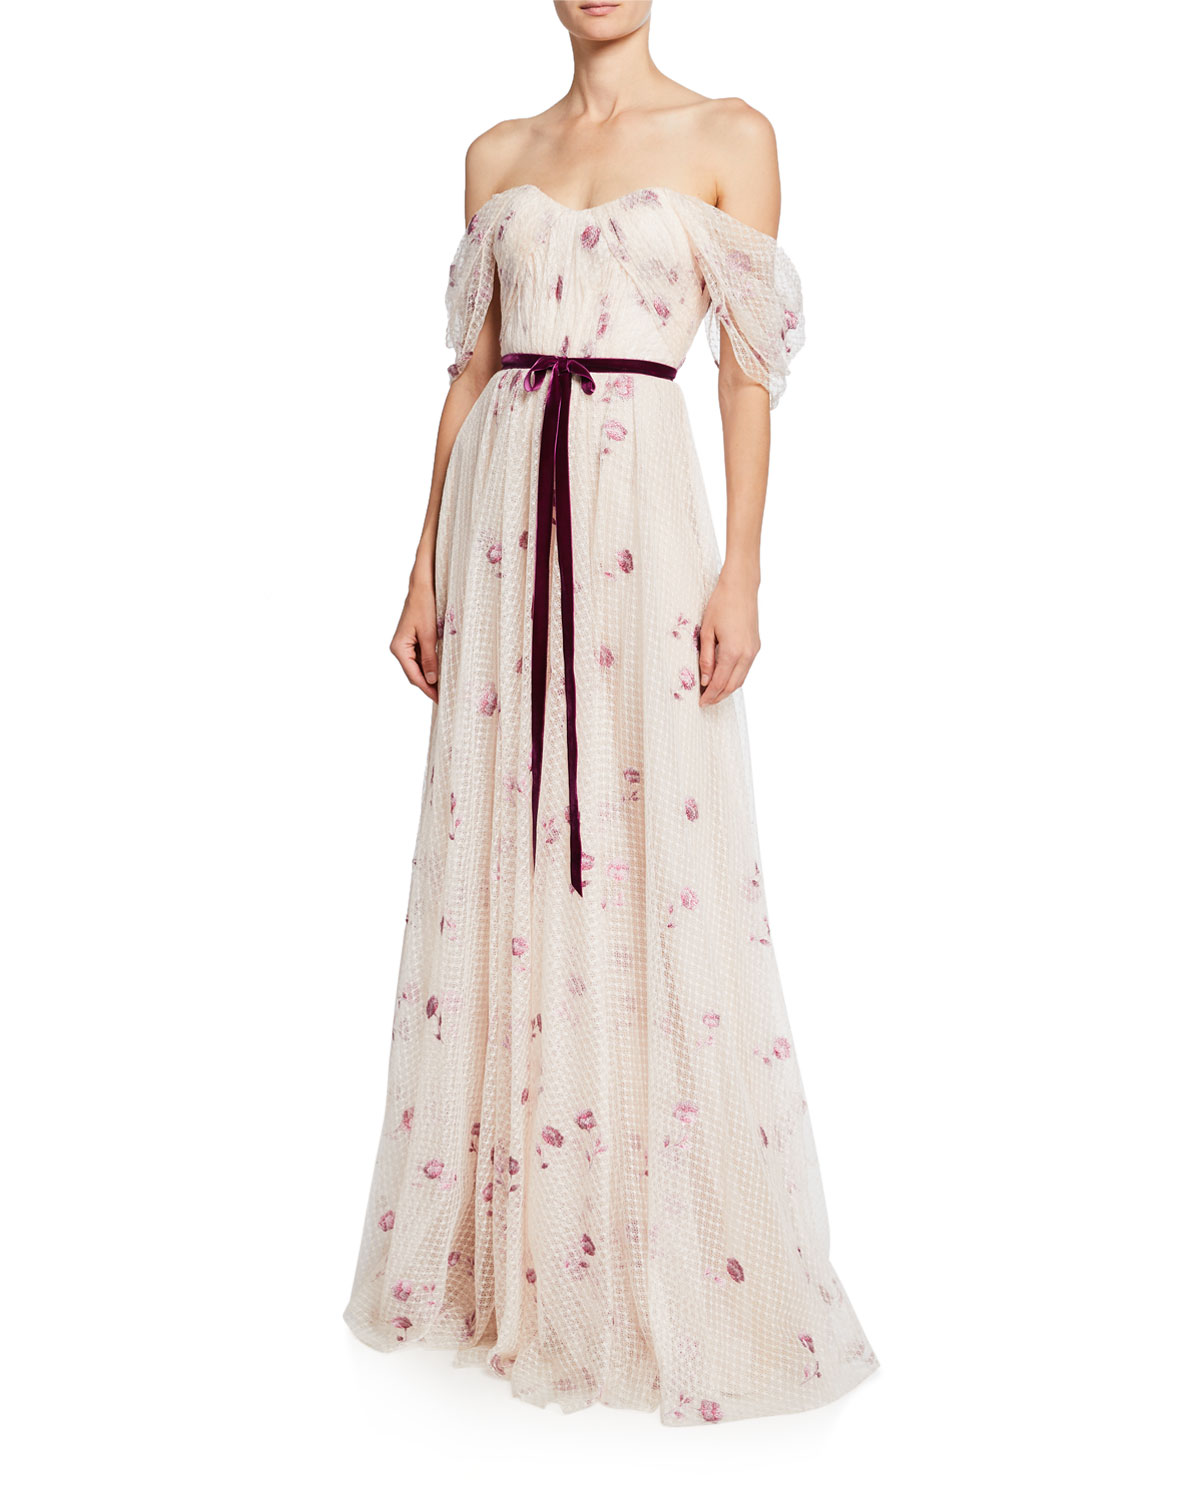 Marchesa Notte Tops OFF-THE-SHOULDER DRAPED BODICE NETTED TULLE GOWN WITH EMBROIDERY